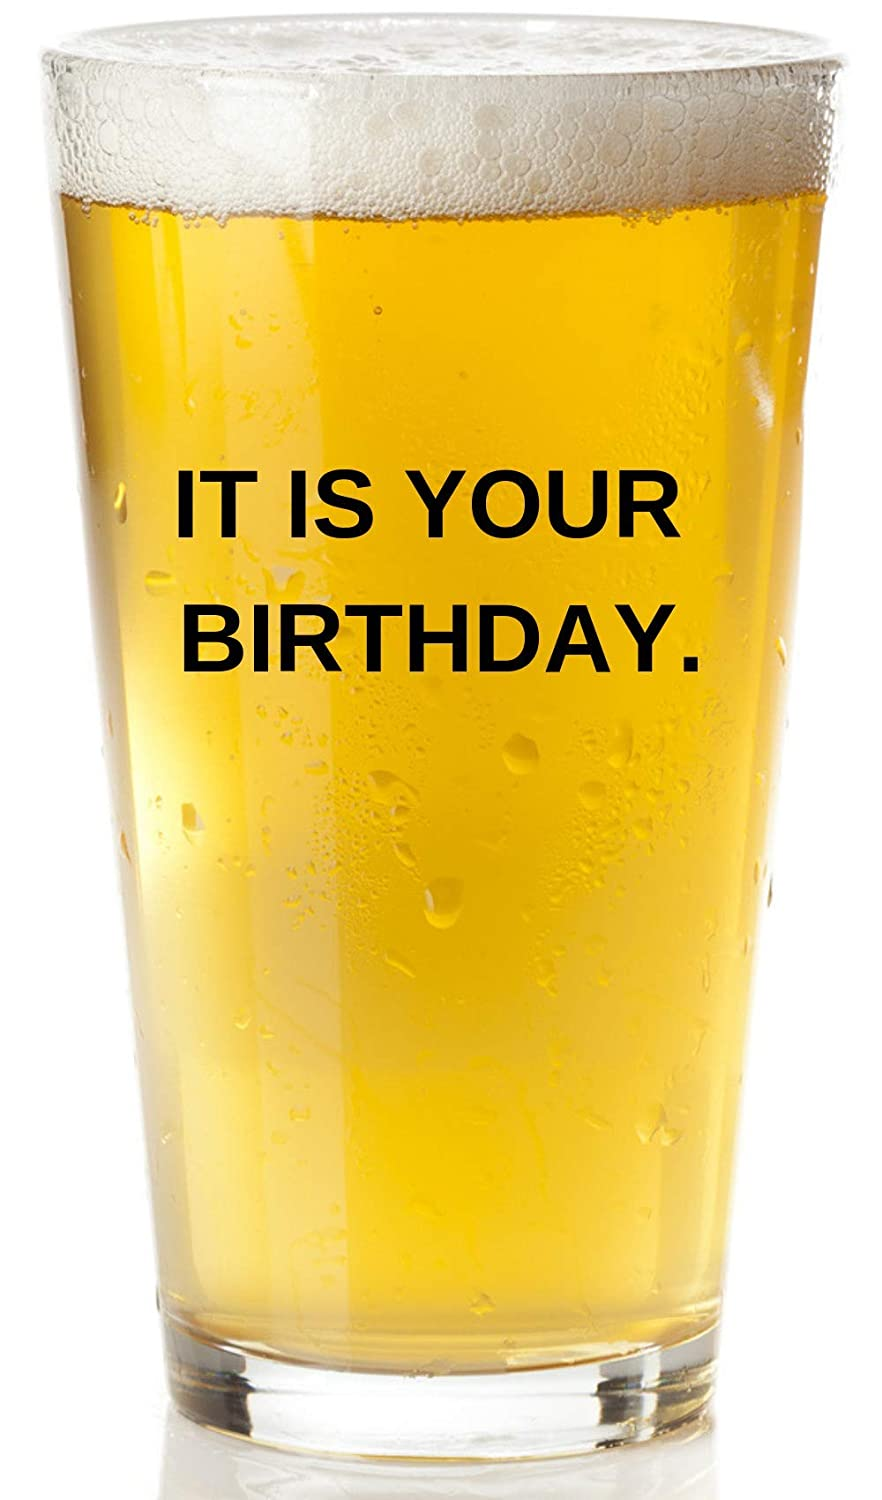 Funny Dwight Schrute and Jim Quote Craft Beer Glasses It Is Your Birthday Beer Glass The Office Merchandise Beer Mug